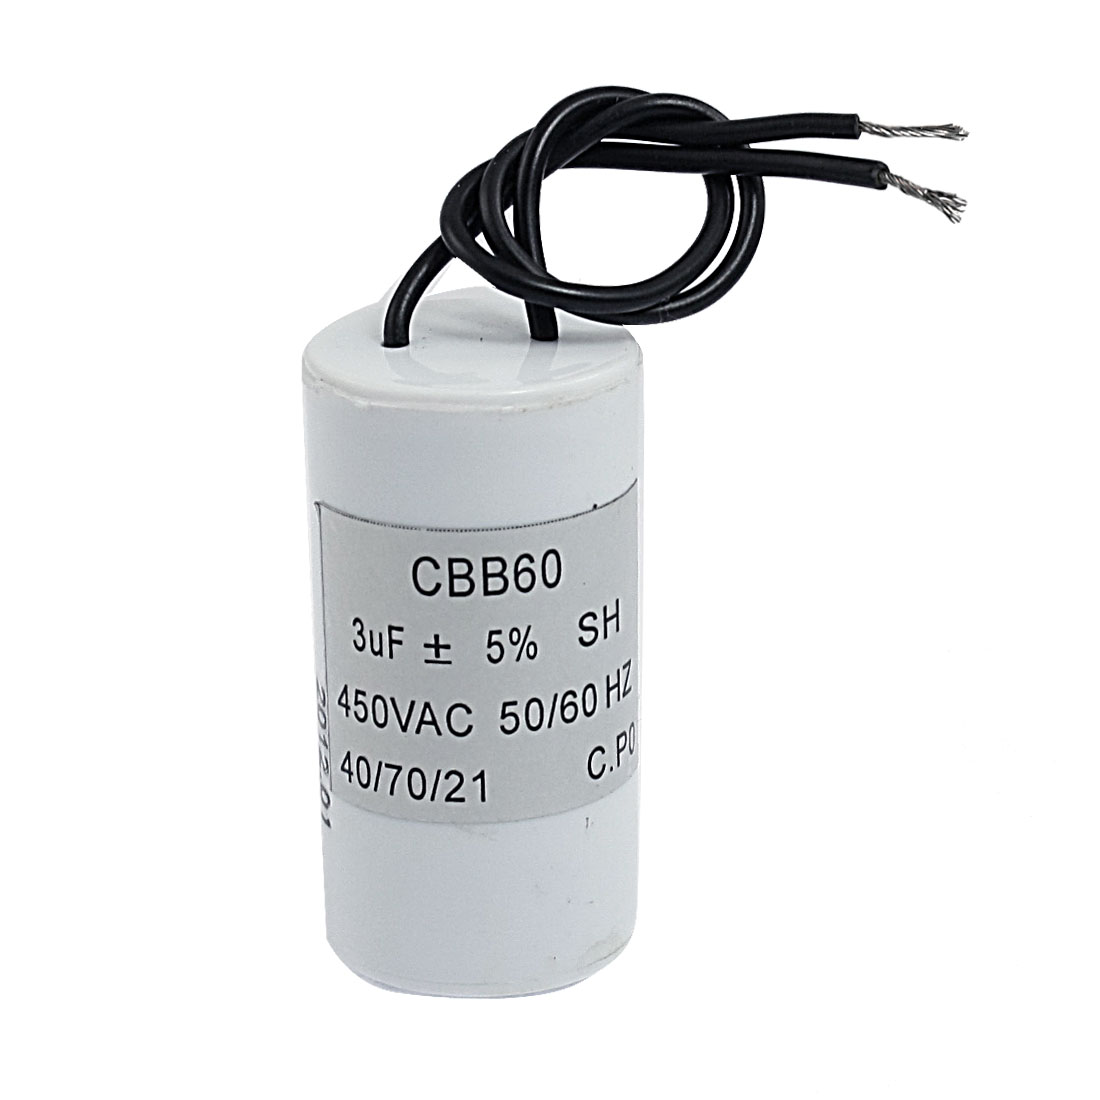 CBB60 SH Polypropylene Film Motor Capacitor 3uF 450VAC w 2 Lead Wire White